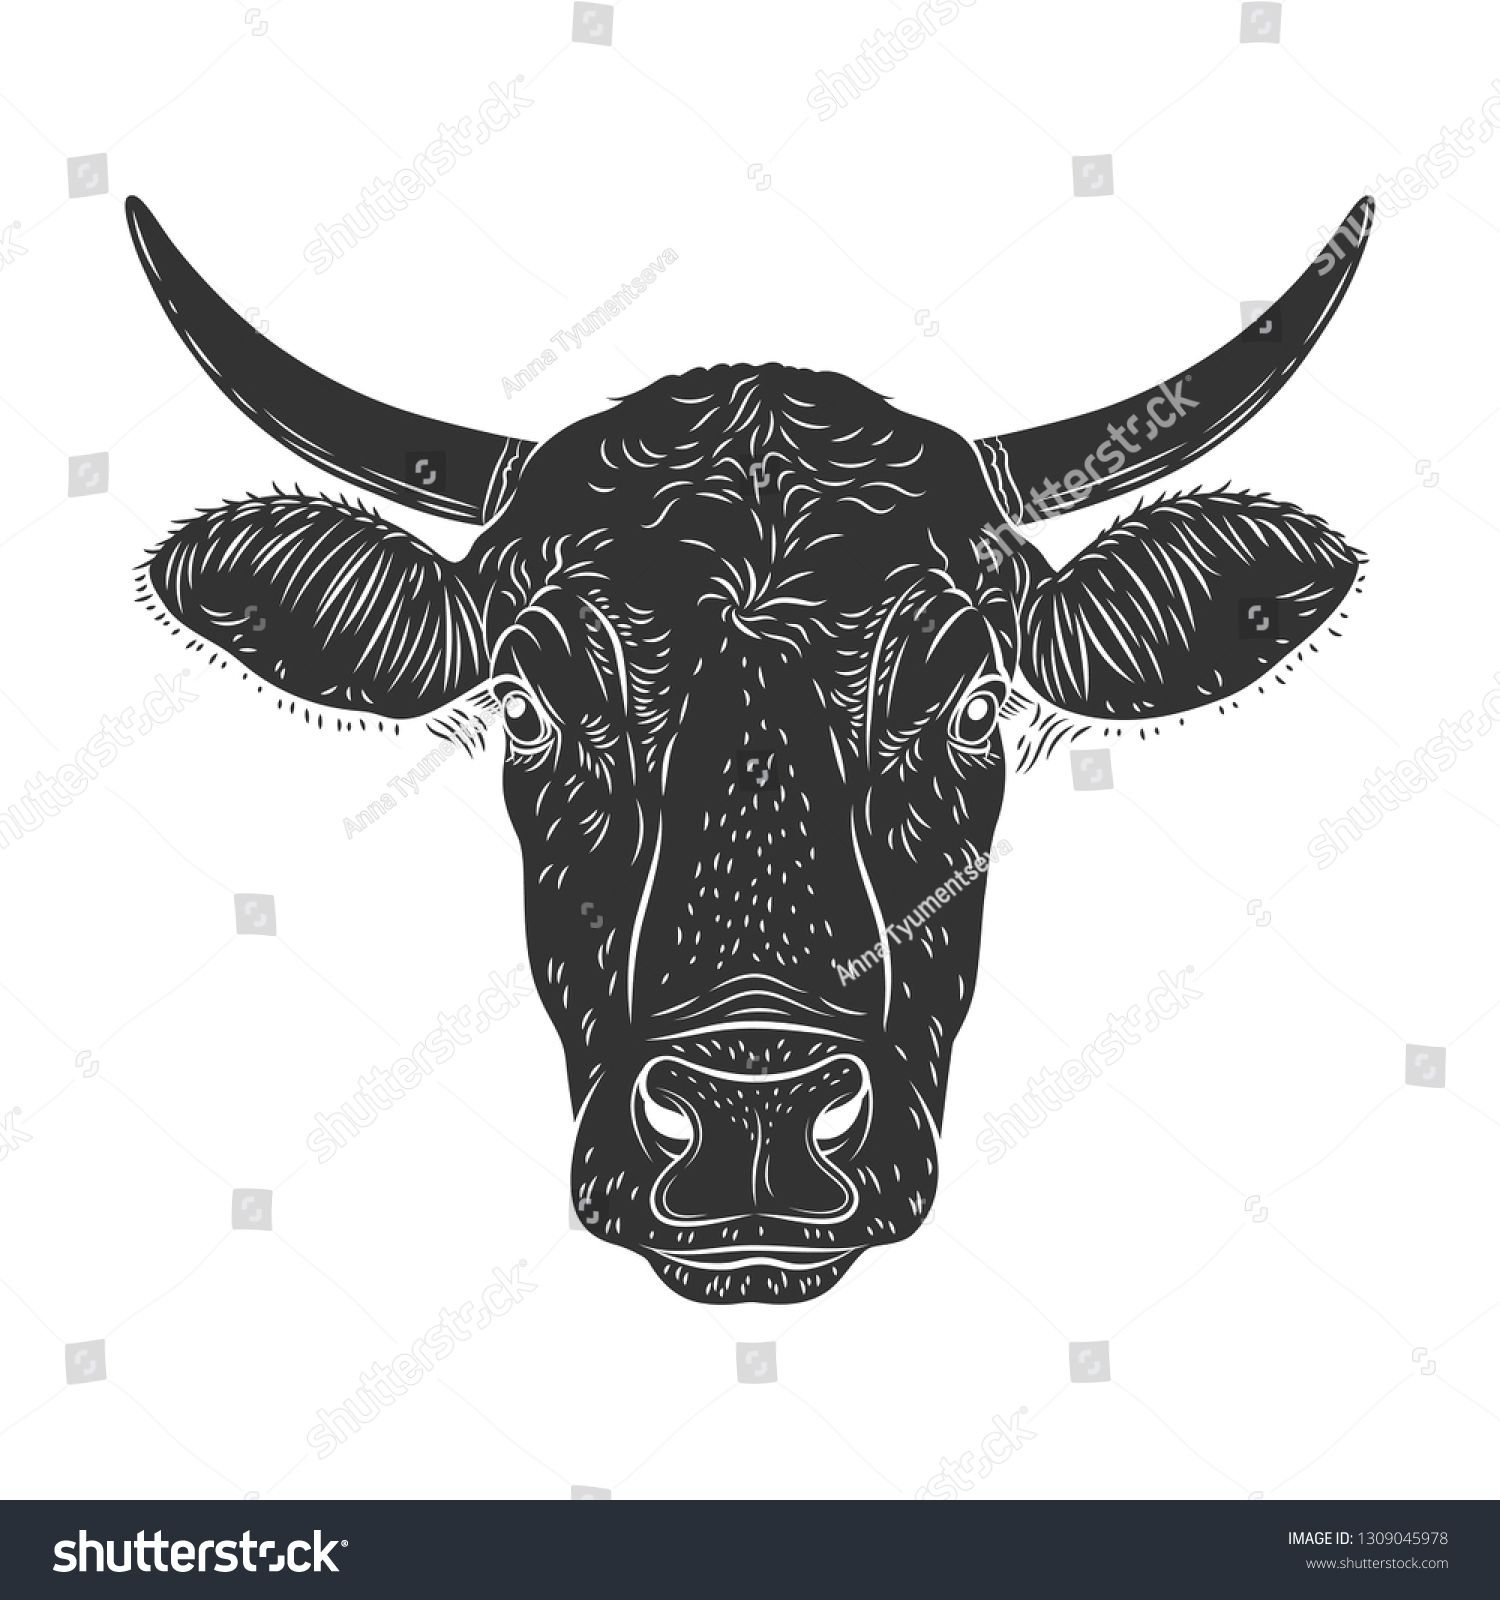 Cow calf bull's head isolated on white background. Cattle